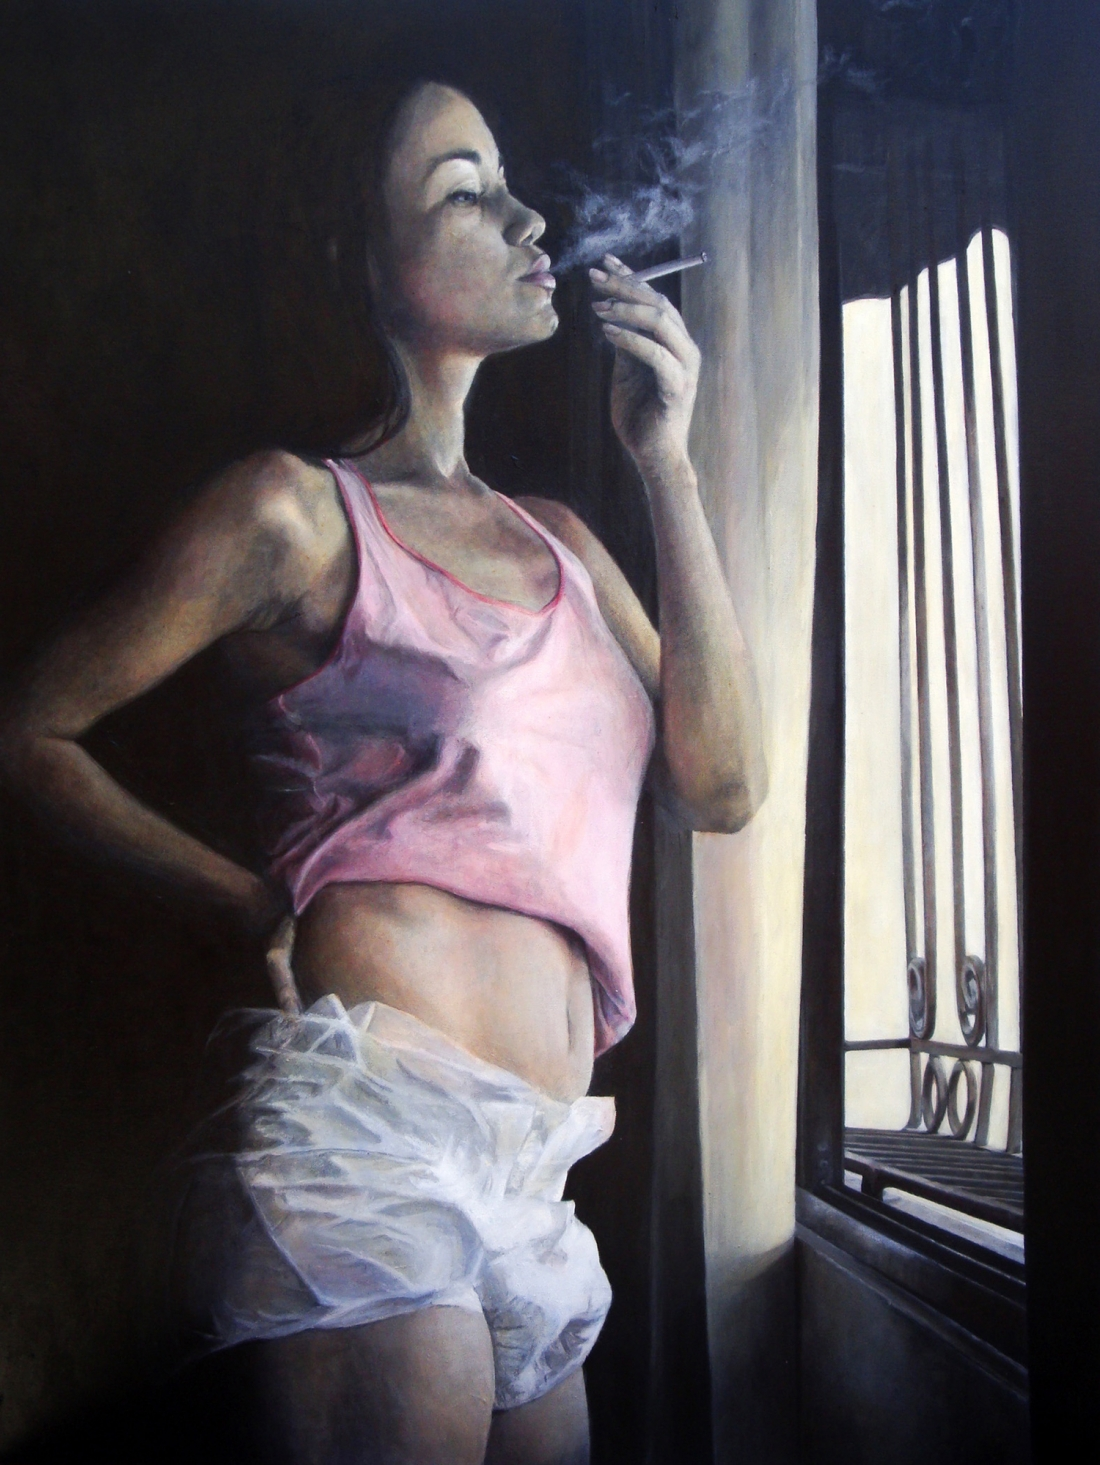 Paula Saneaux - The Cigarette - Acrylic on Canvas - 48x36 in - 2009